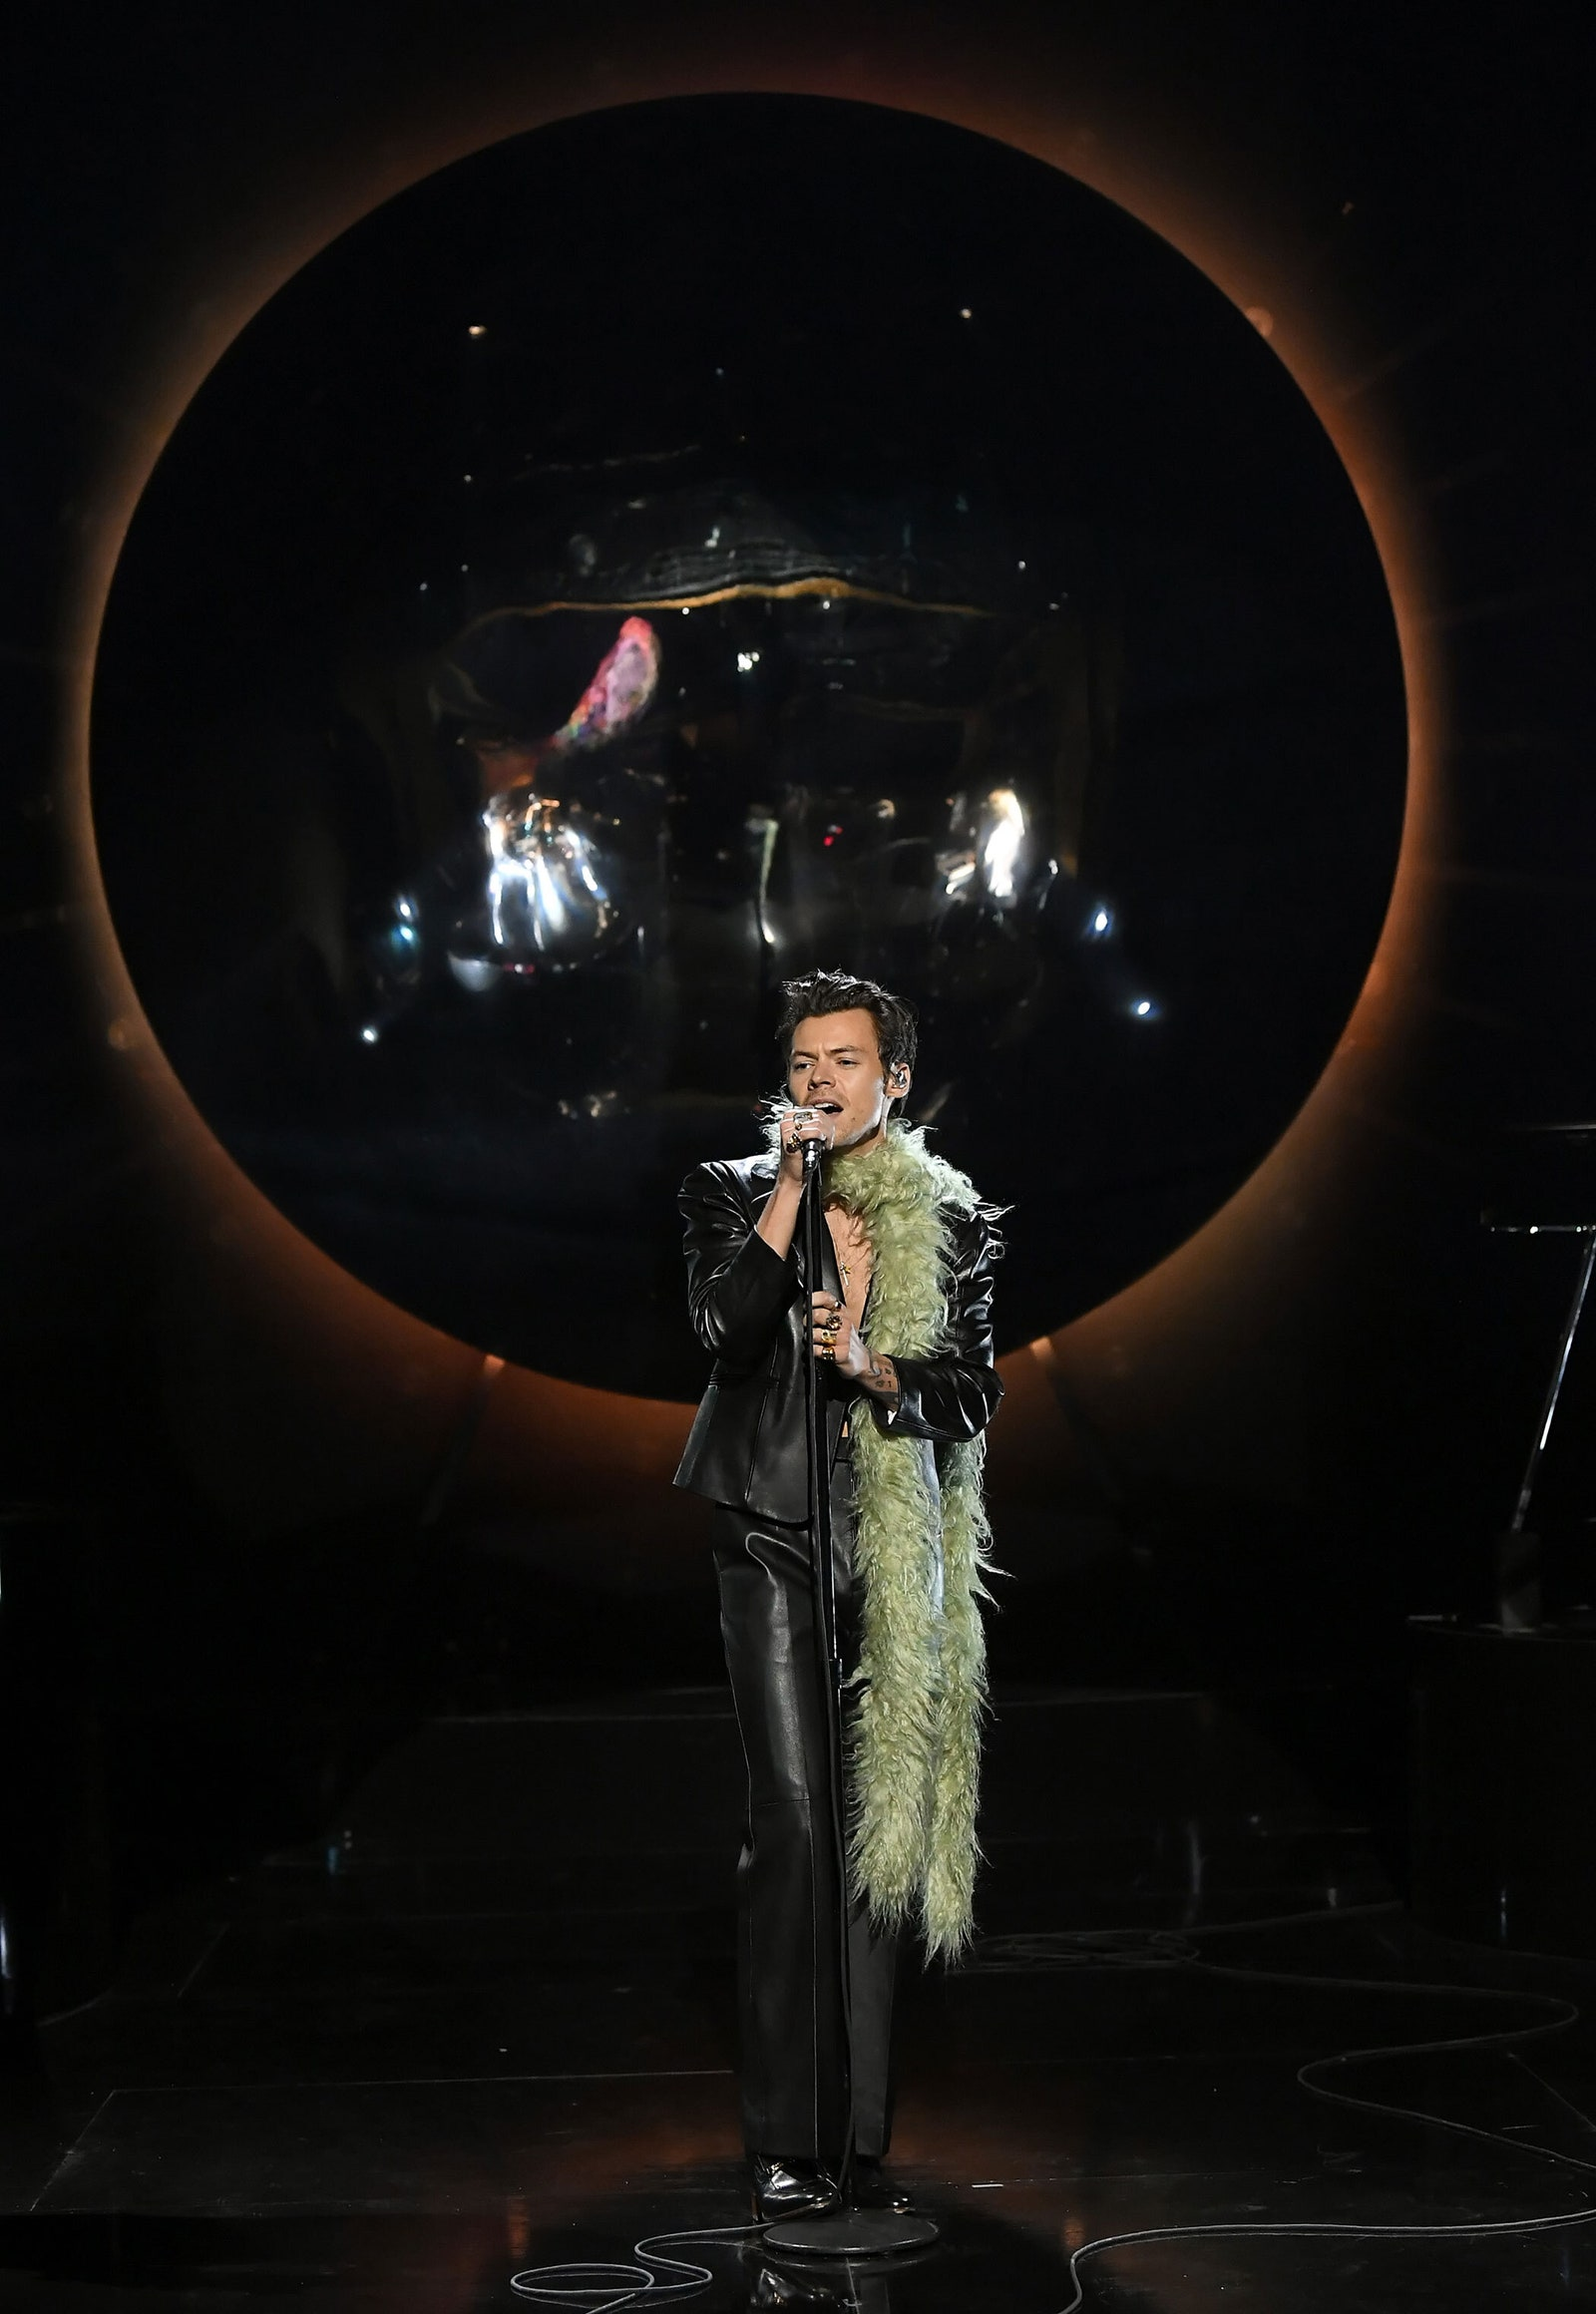 Harry Styles performing 'Watermelon Sugar' at the Grammy Awards 2021.